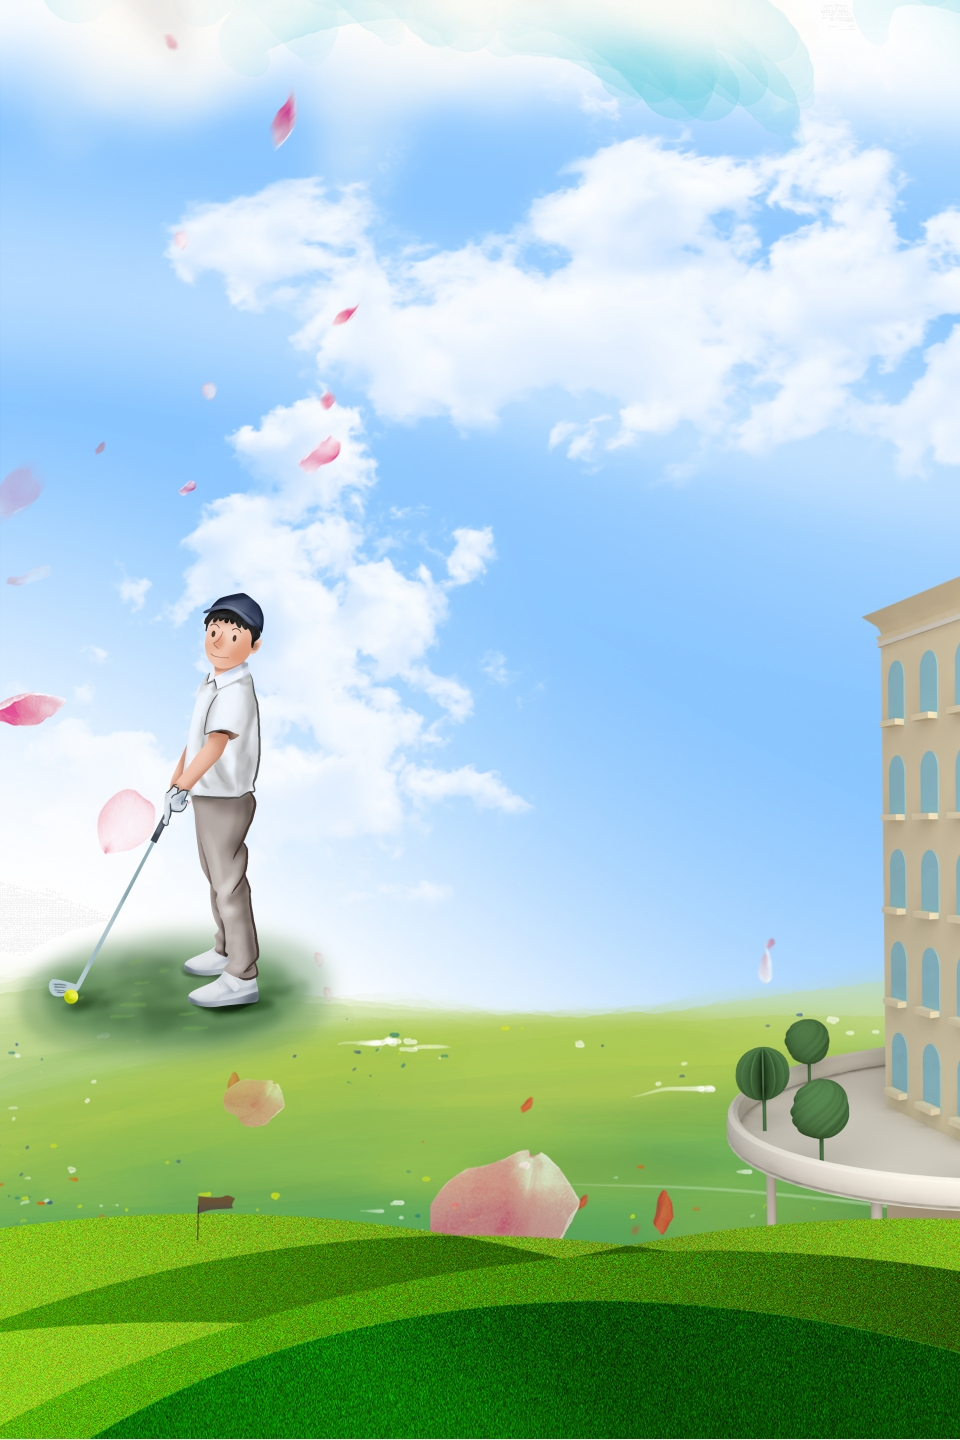 Simple Golf Course Tourism Source File H5 Background Material Simple Golf Golf Background Image For Free Download